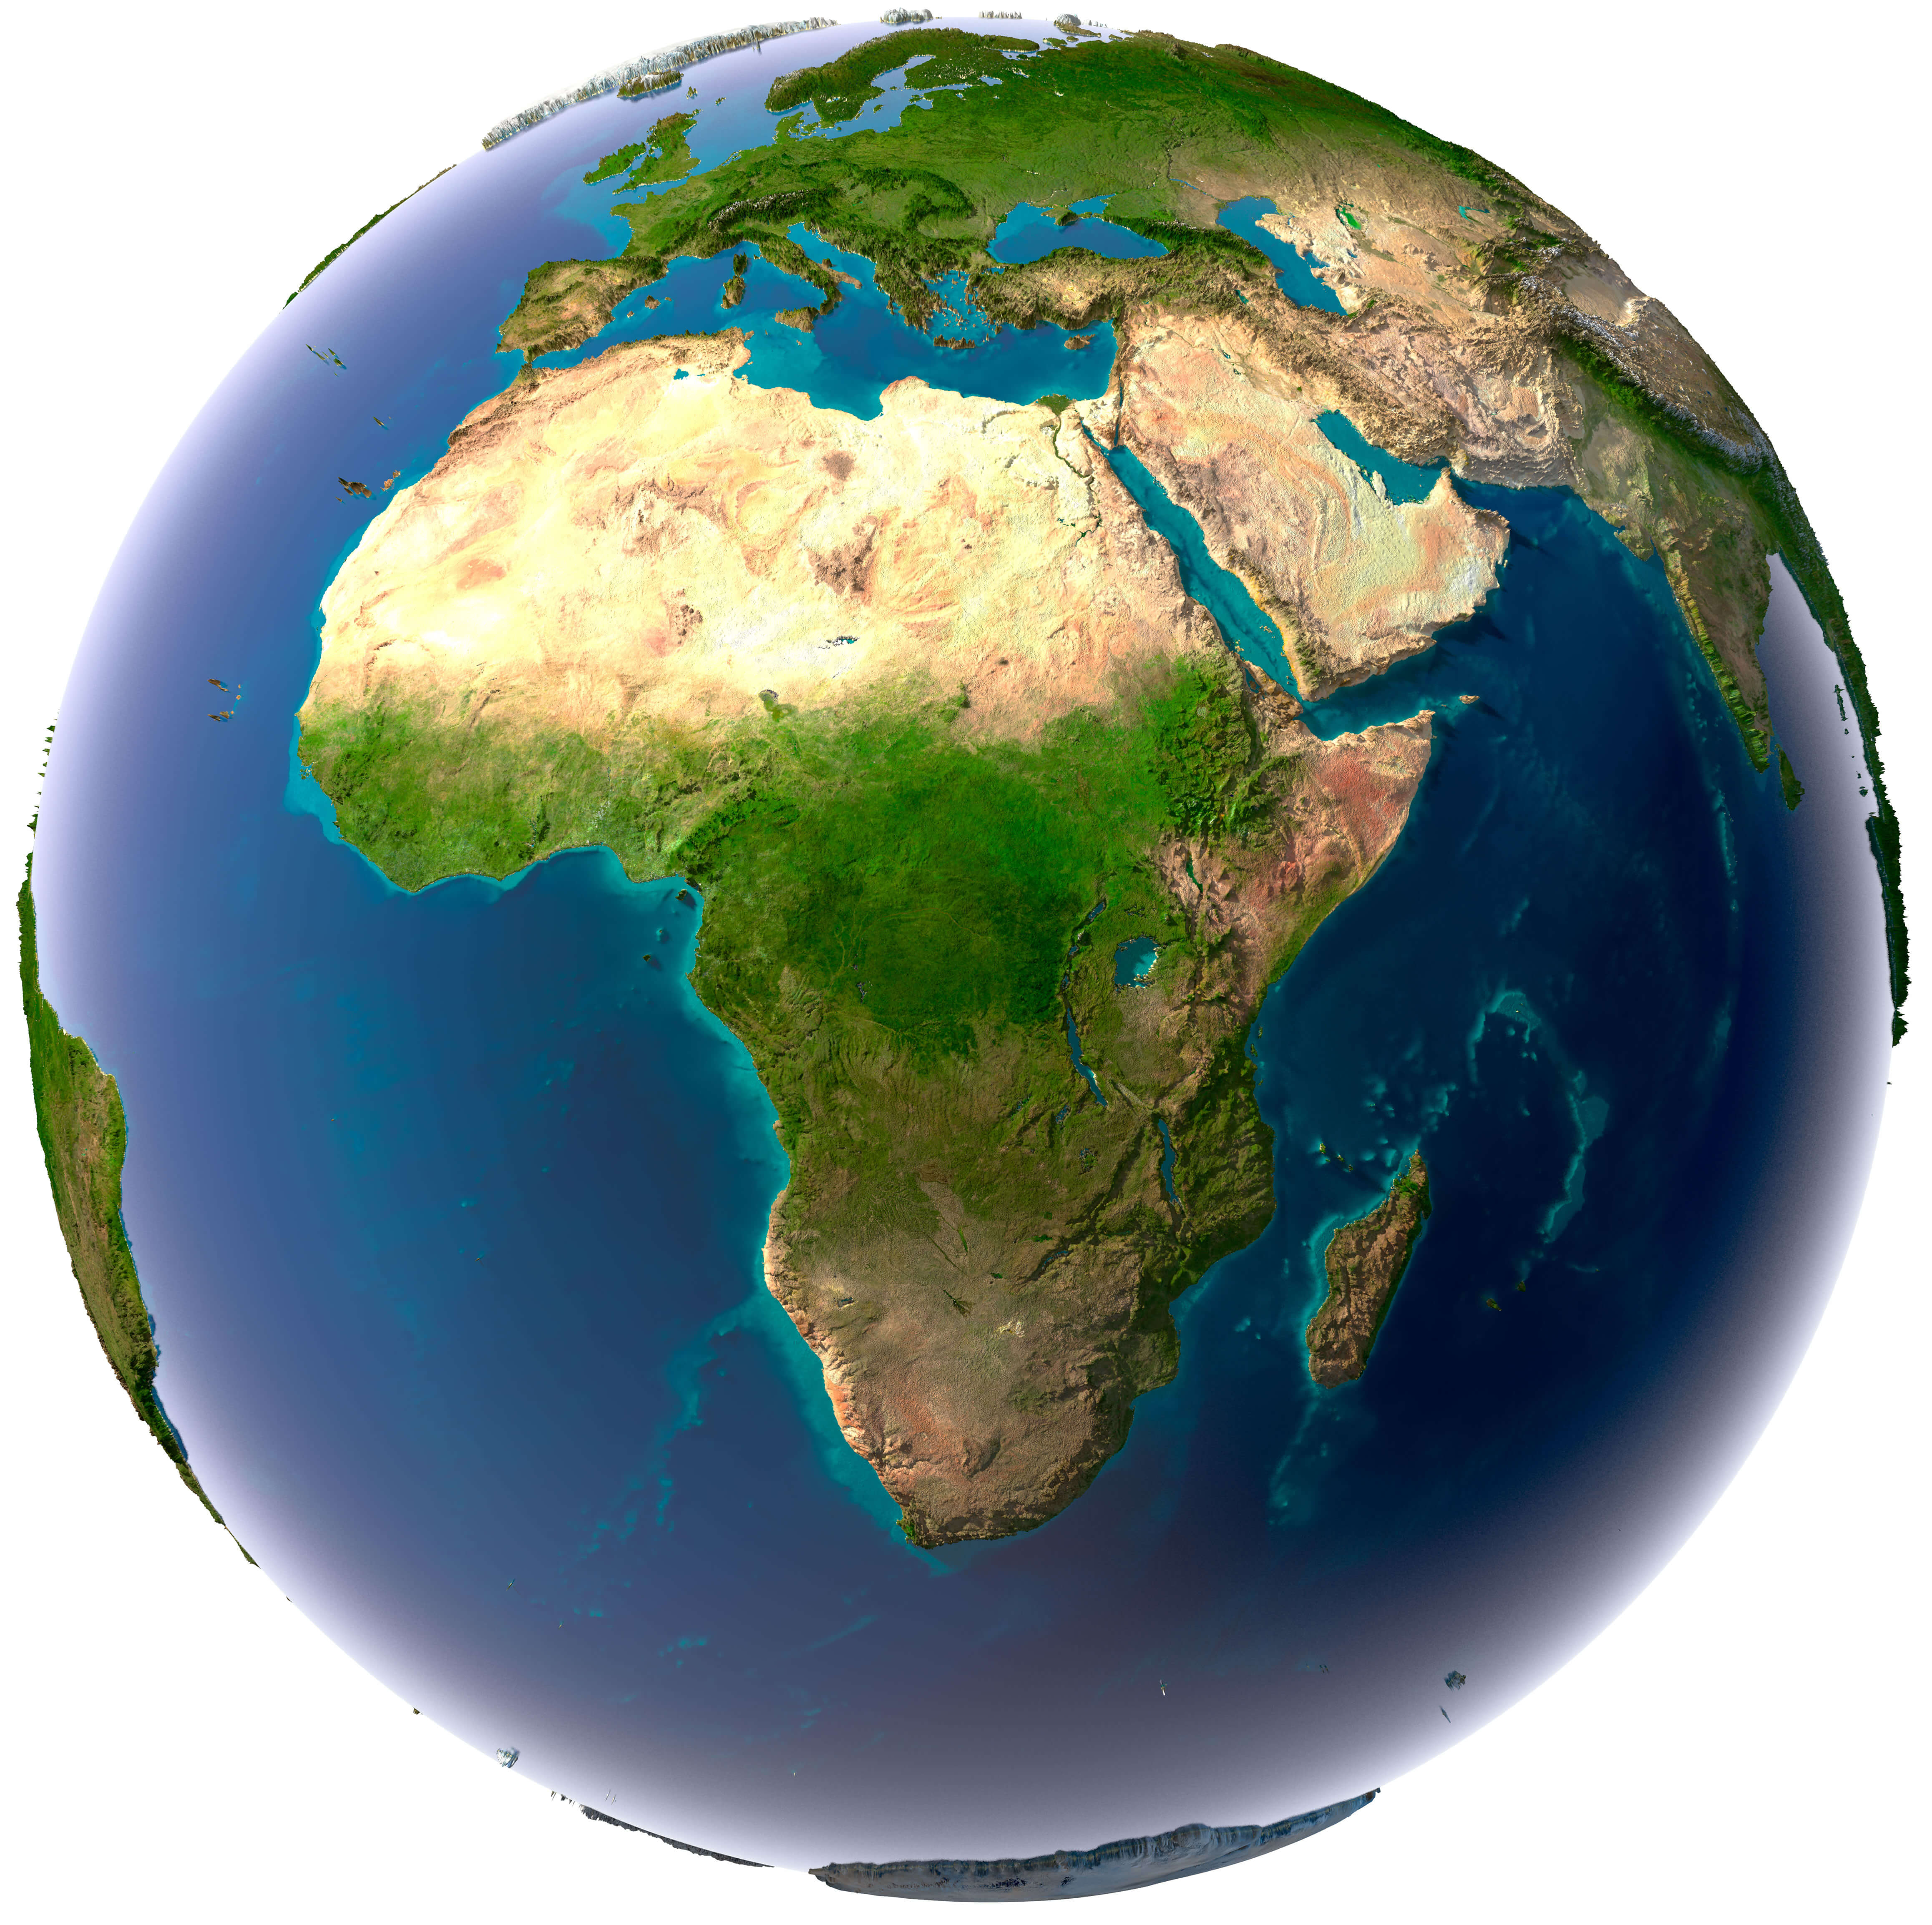 Africa Detailed Topography of Continents